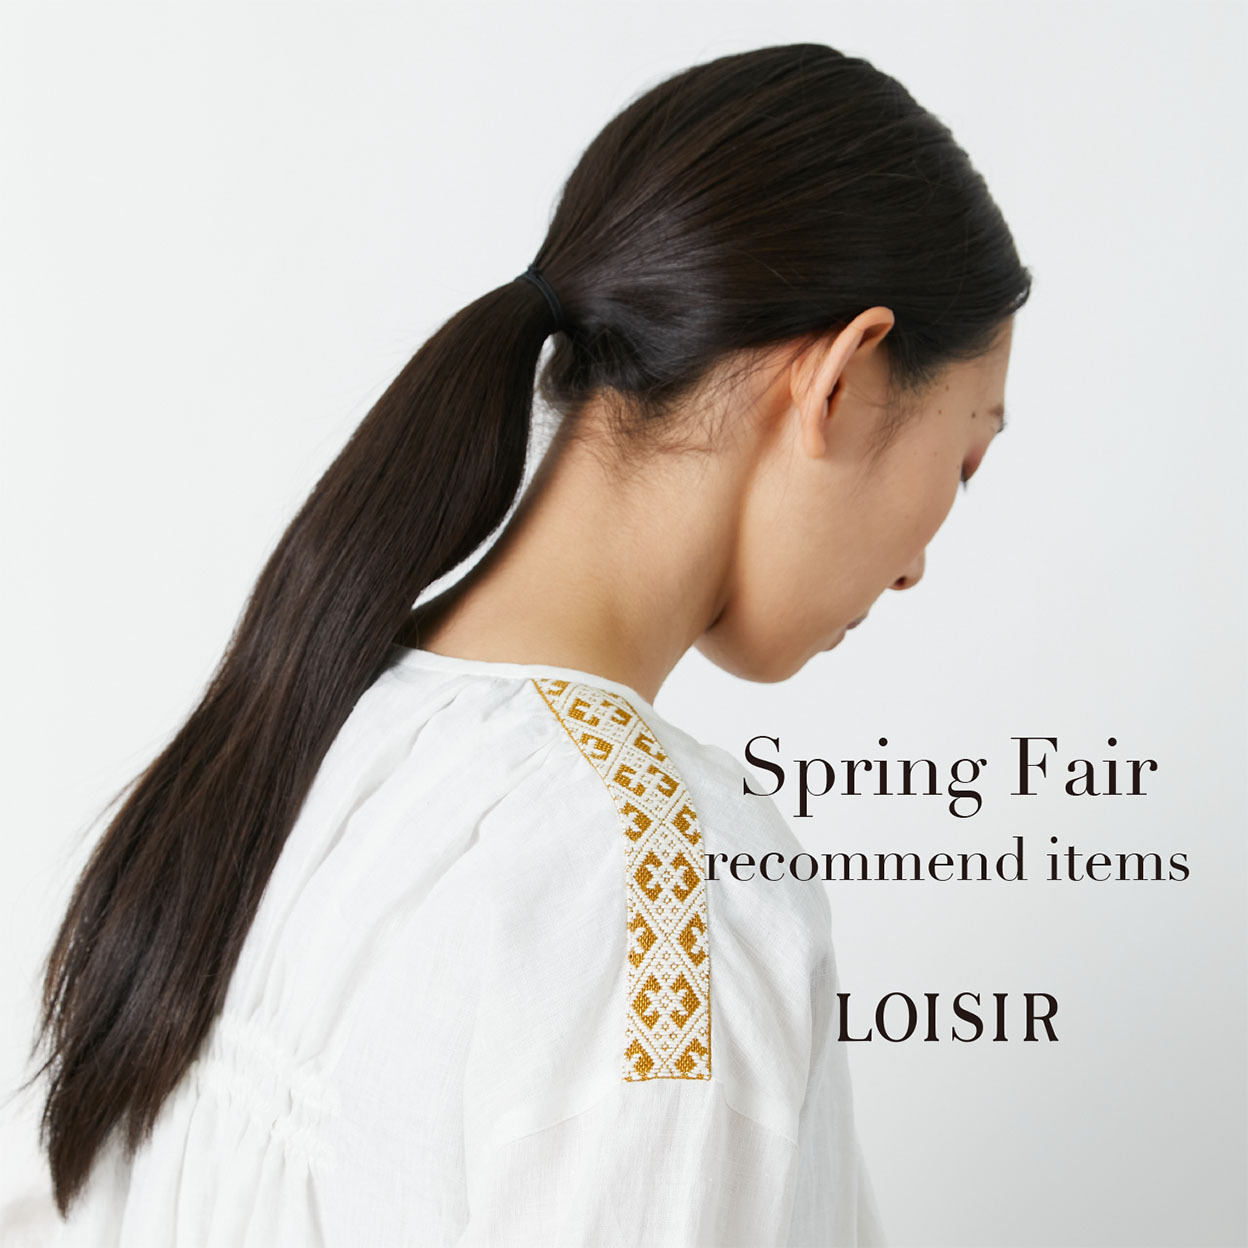 Spring Fair recommend items